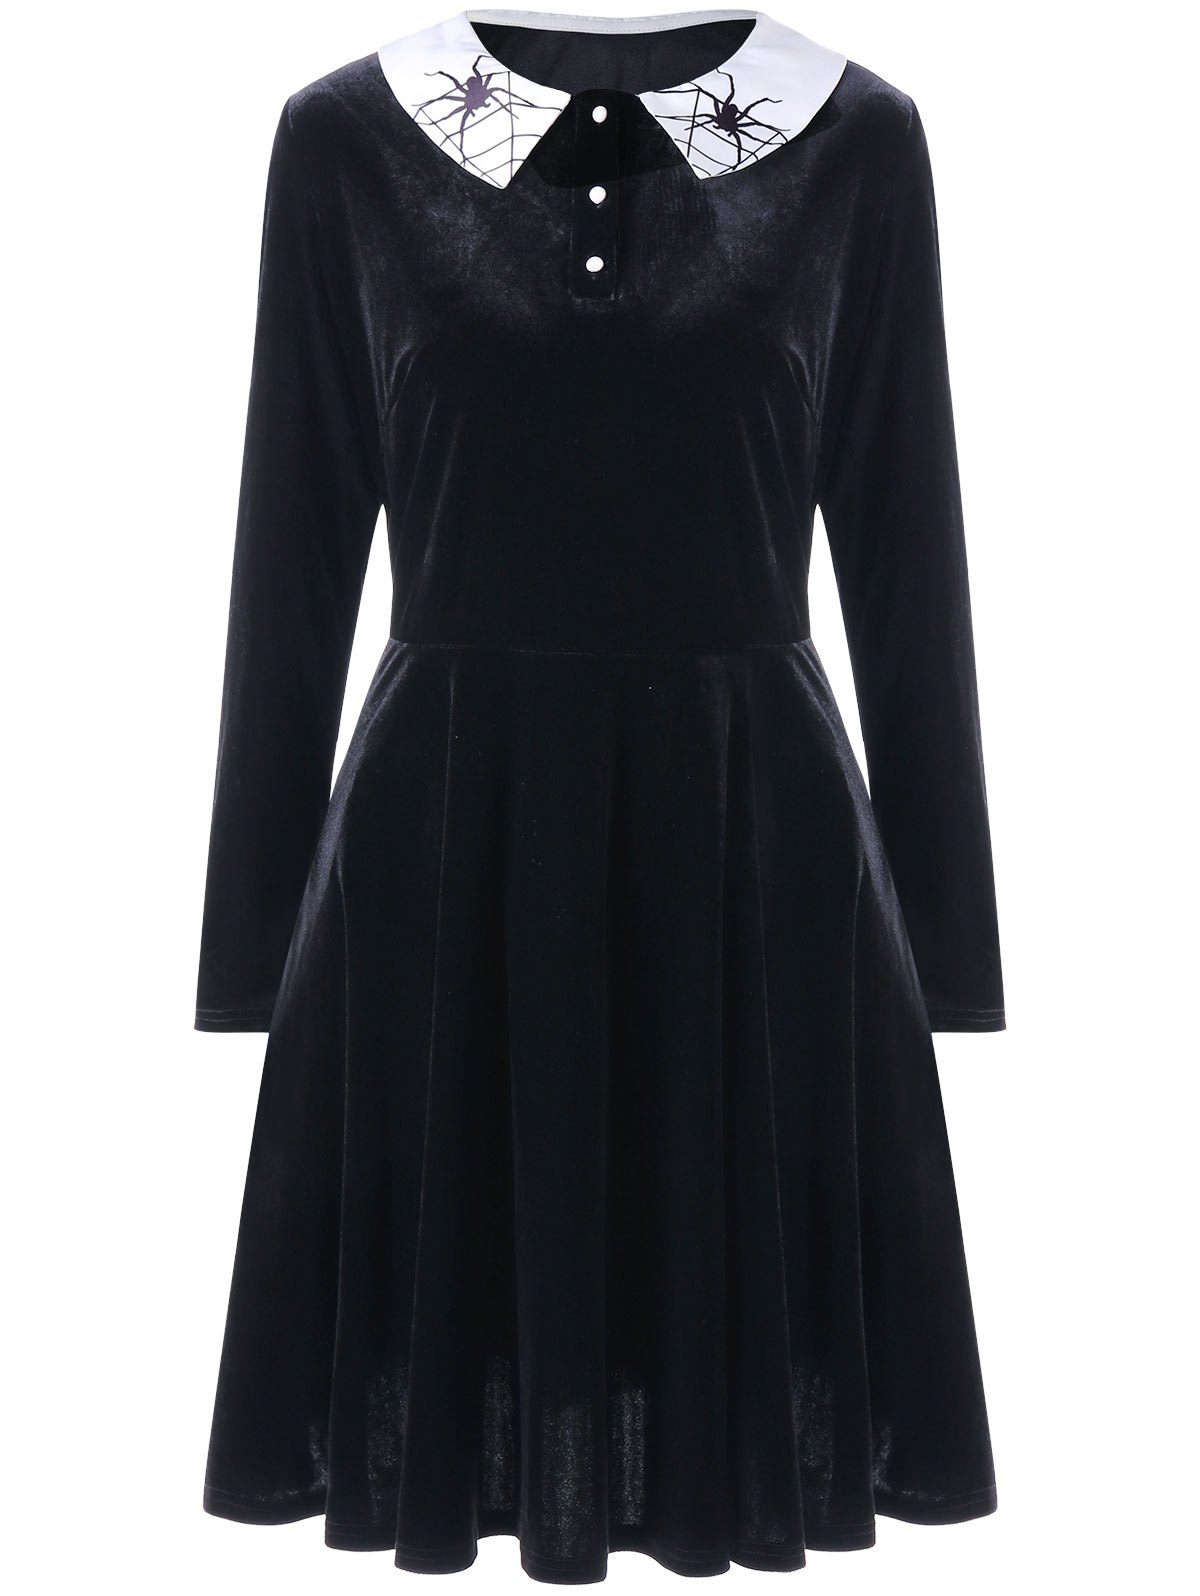 Plus Size Spider Print Long Sleeve Velvet DressWOMEN<br><br>Size: 4XL; Color: BLACK; Style: Brief; Material: Polyester; Silhouette: A-Line; Dresses Length: Knee-Length; Neckline: Peter Pan Collar; Sleeve Length: Long Sleeves; Embellishment: Button; Pattern Type: Insect; With Belt: No; Season: Fall,Spring; Weight: 0.6100kg; Package Contents: 1 x Dress;